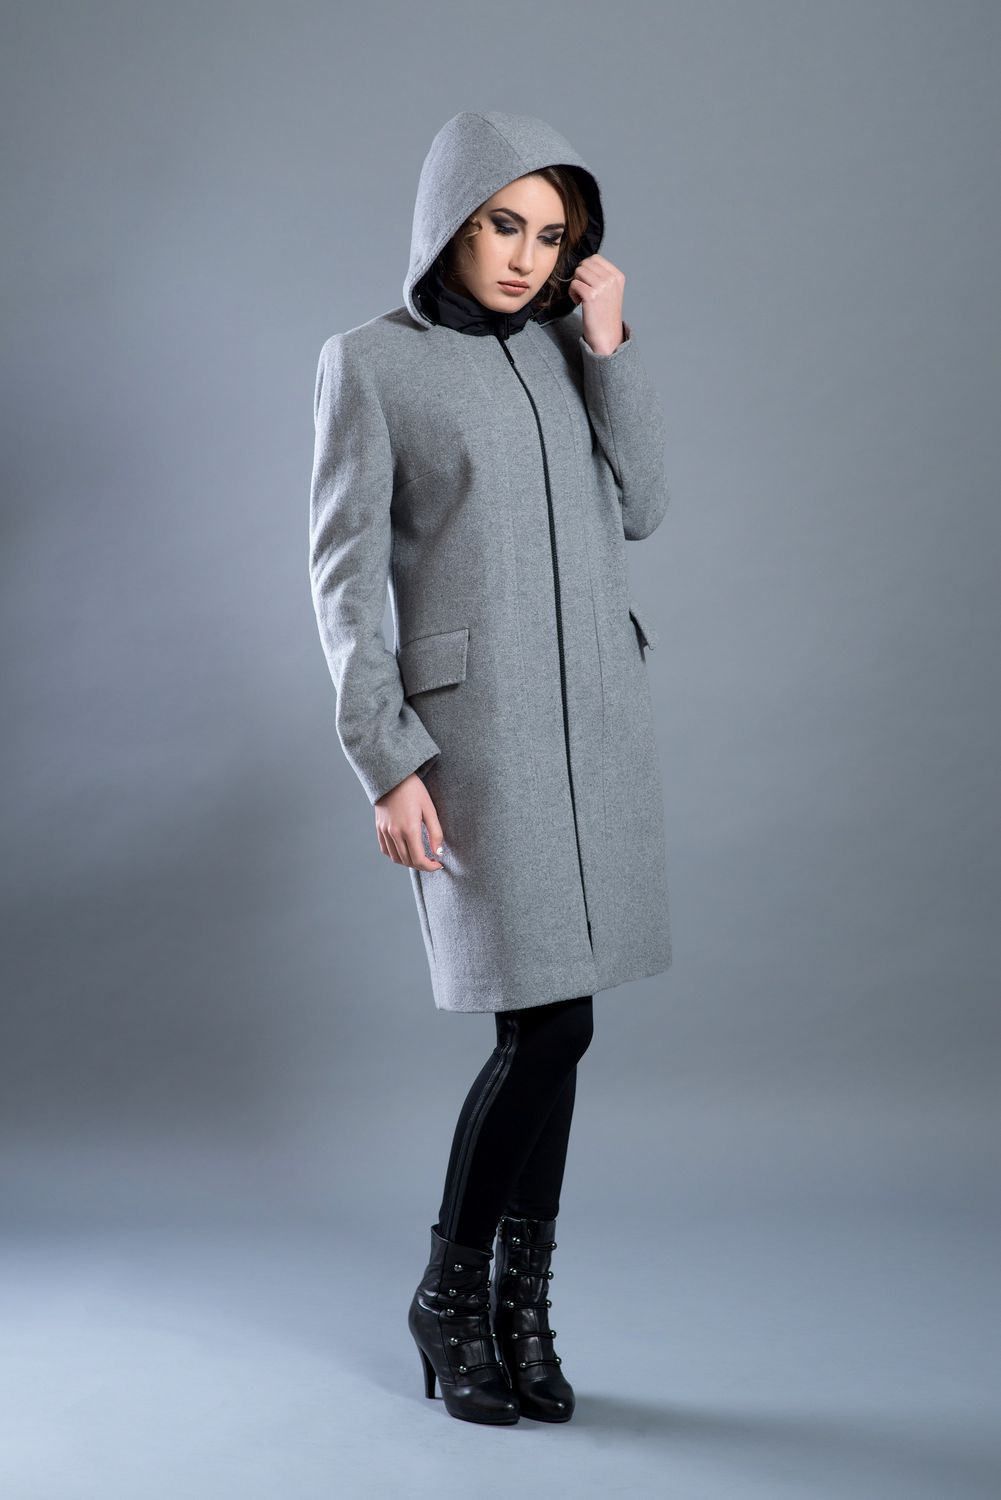 Hooded wool coat with zipper